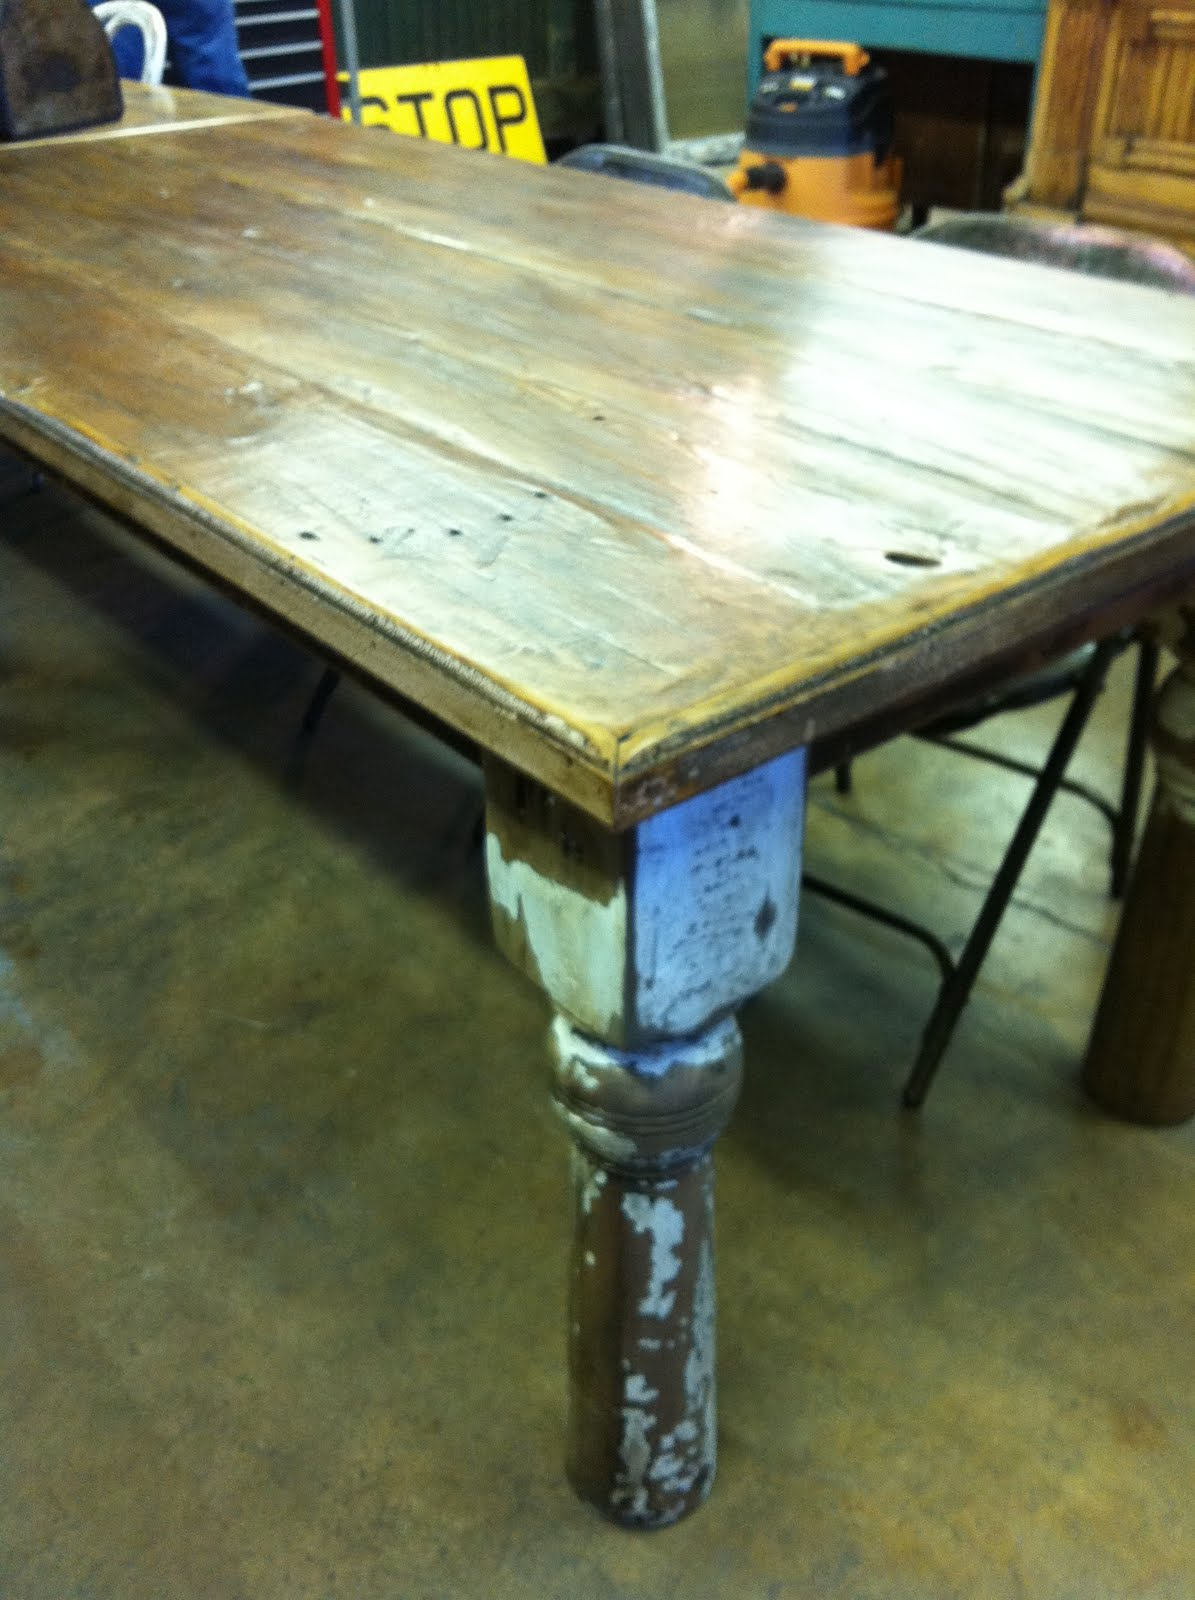 Handmade Table From Reclaimed Wood